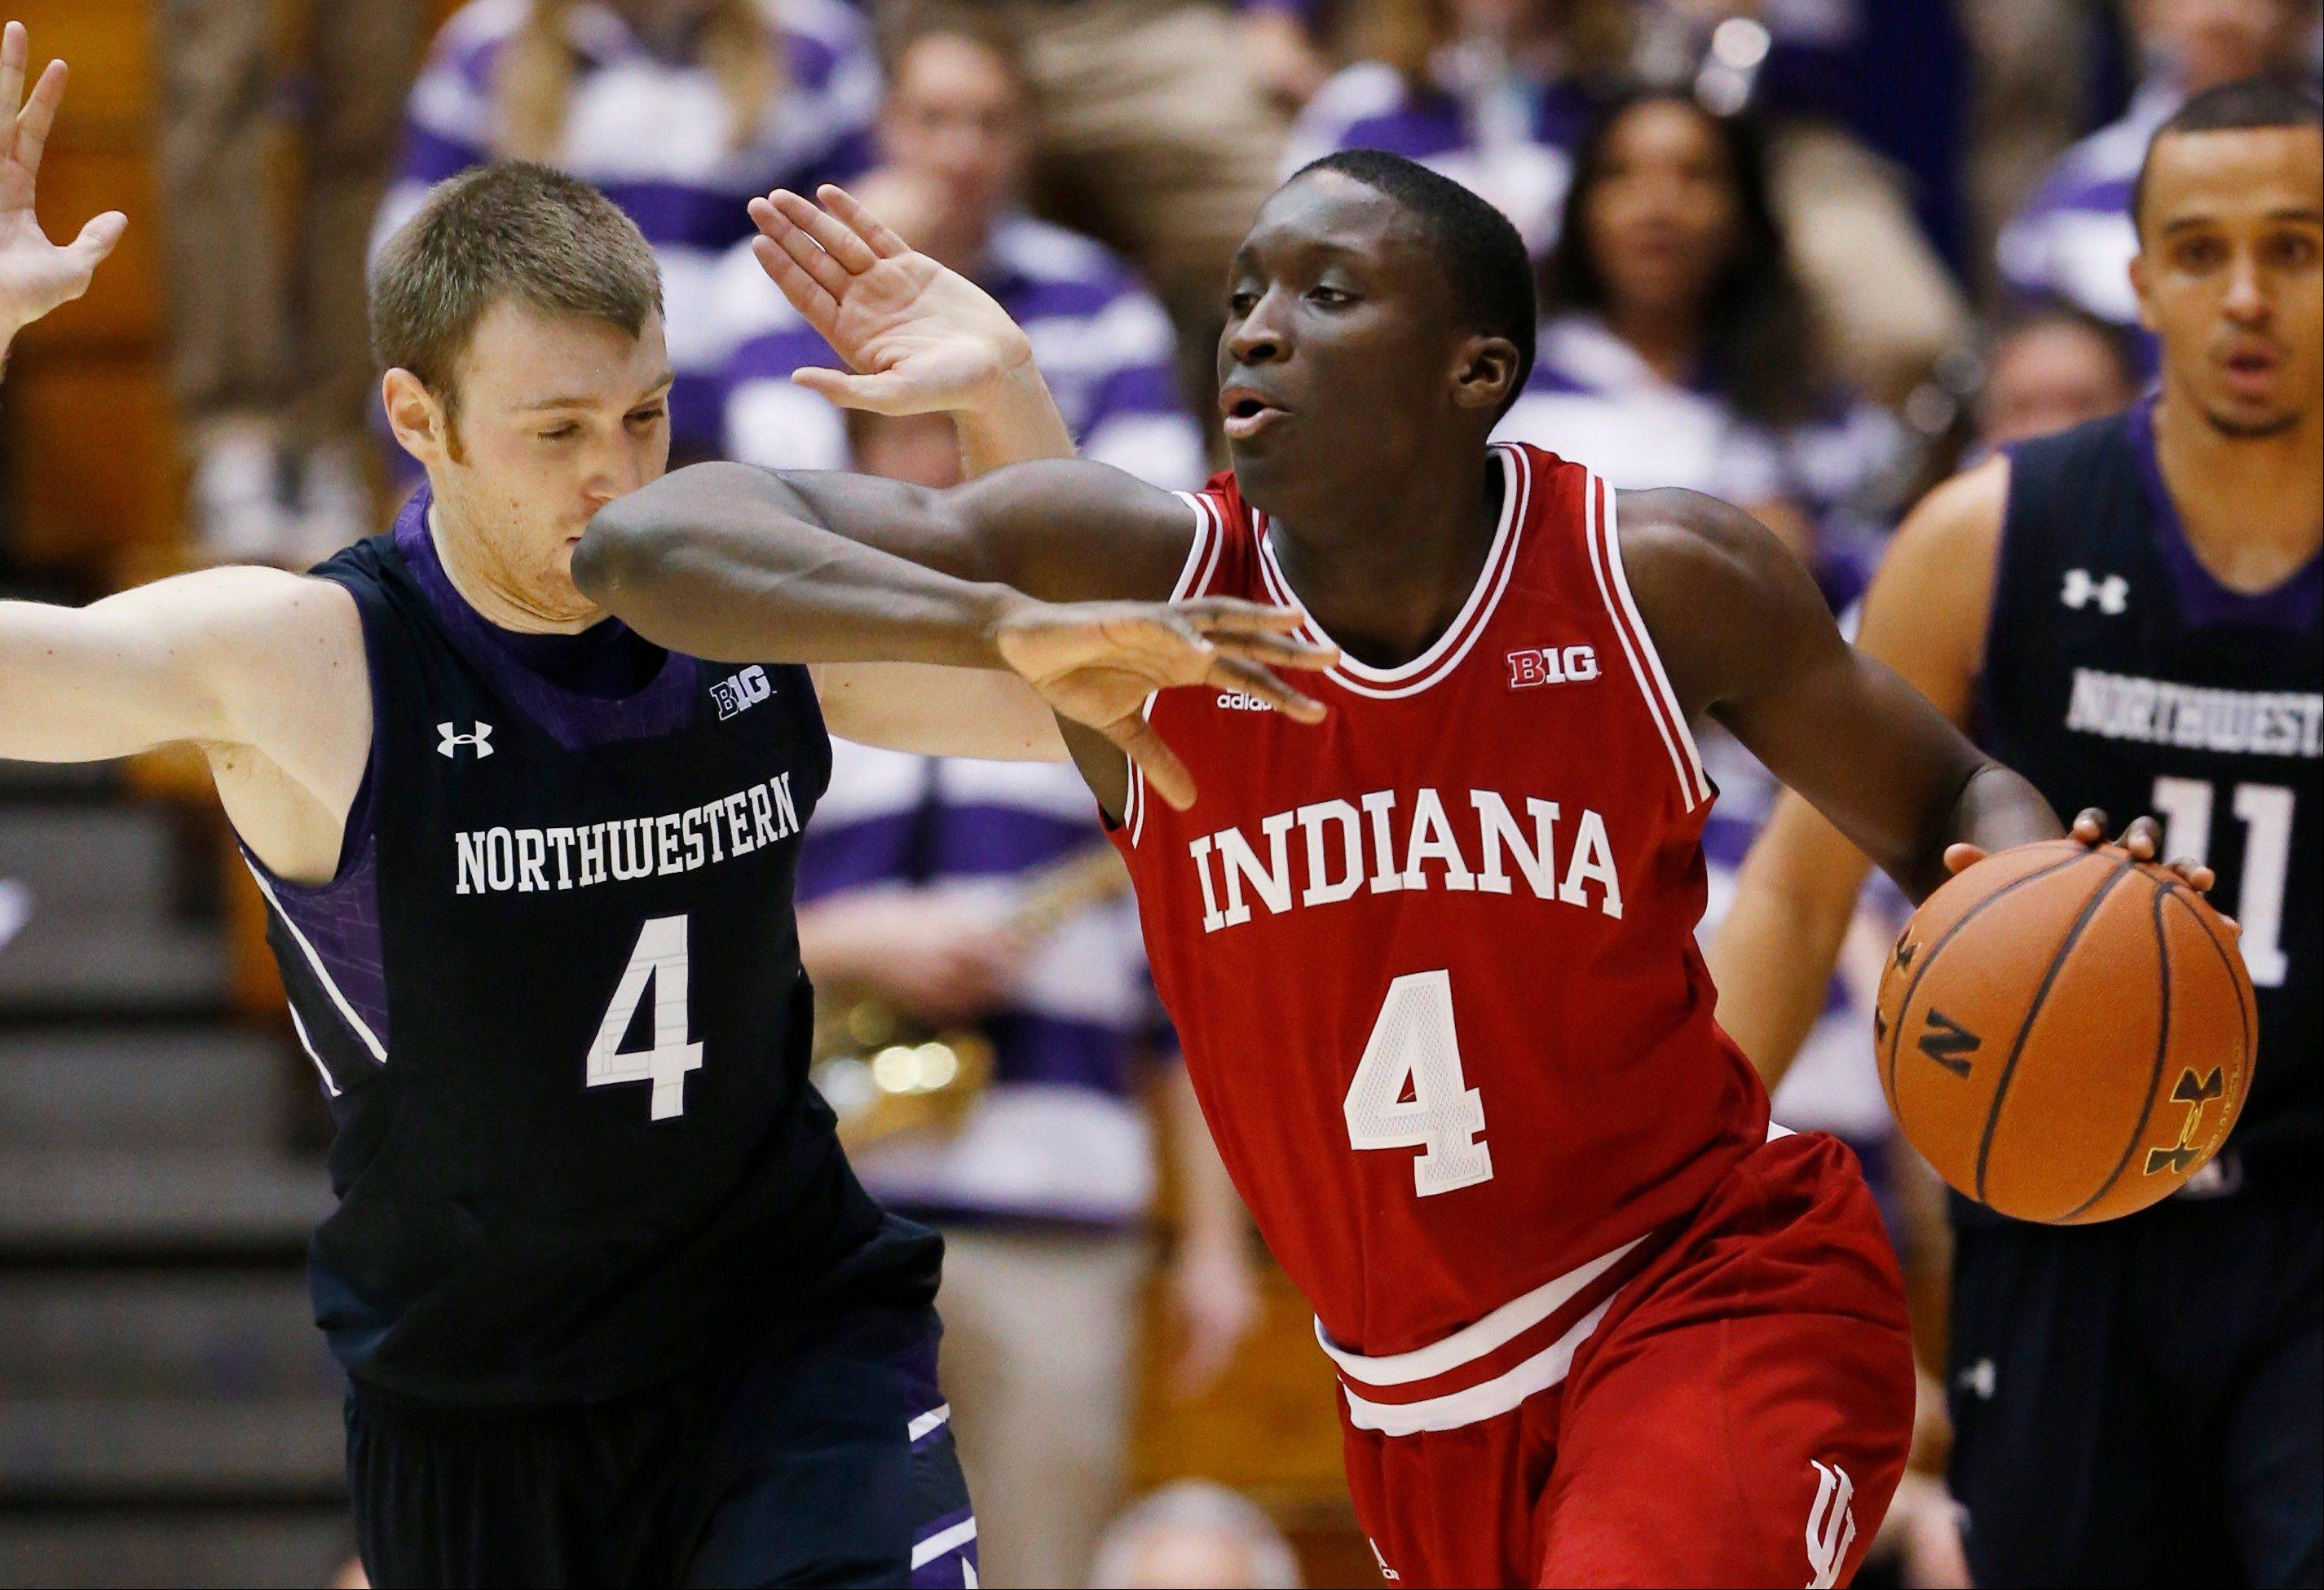 Indiana guard Victor Oladipo, front right, drives against Northwestern guard Alex Marcotullio during the second half of an NCAA college basketball game in Evanston, Sunday, Jan. 20, 2013. Indiana won 67-59.